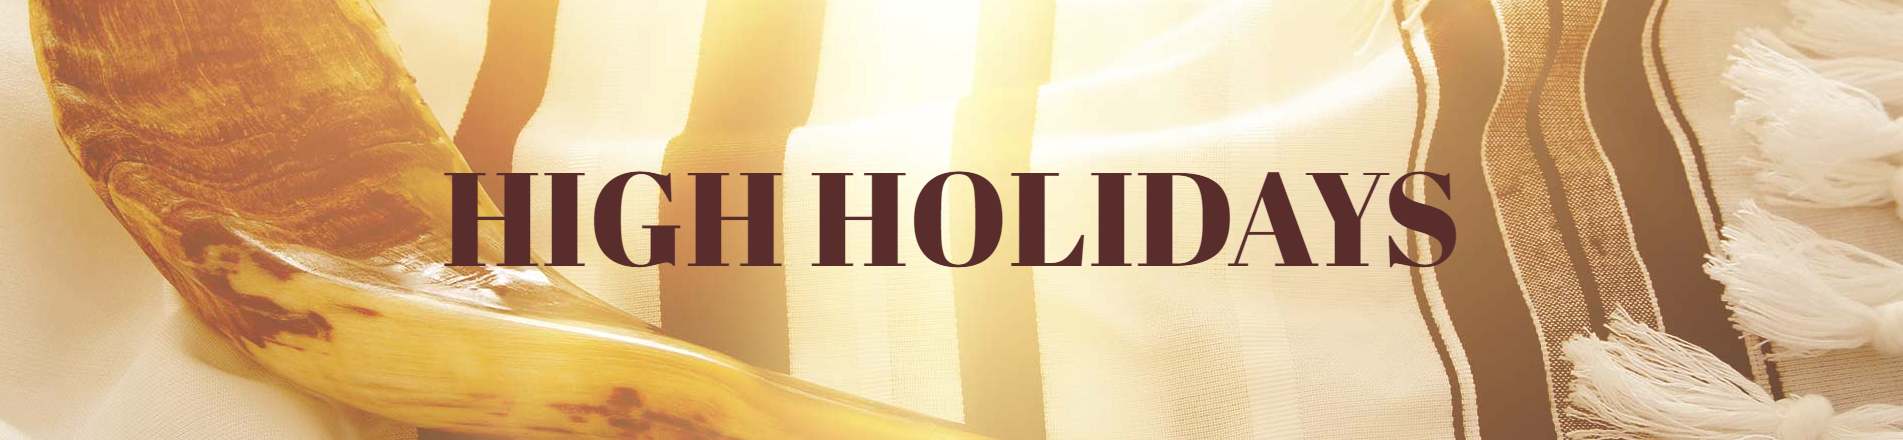 High Holidays Services Banner (465)